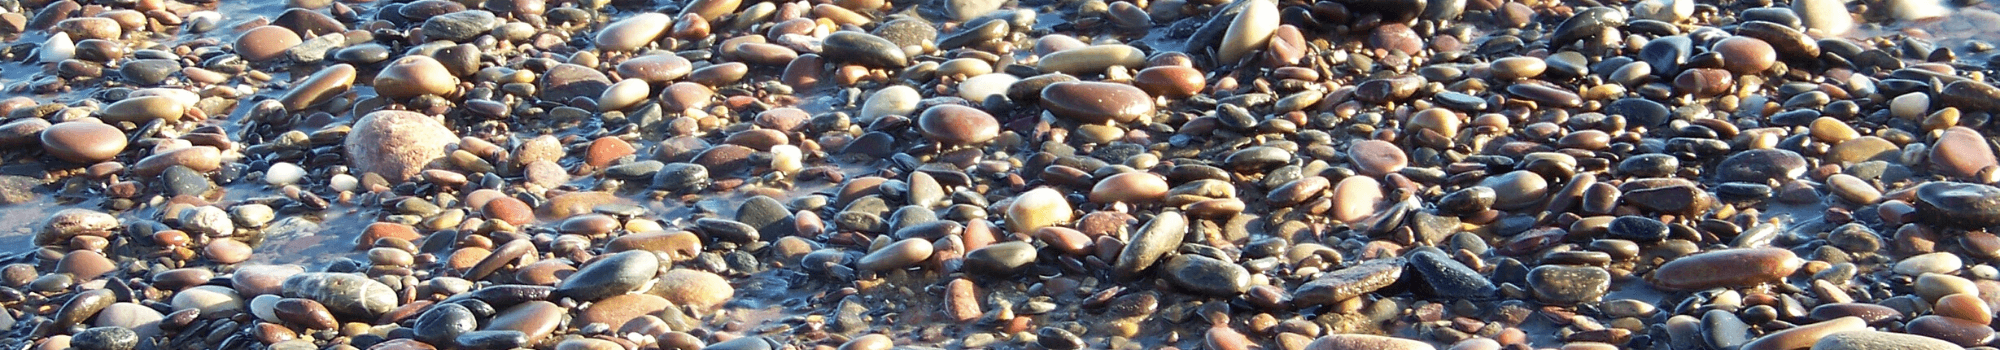 Pebbled beach close up